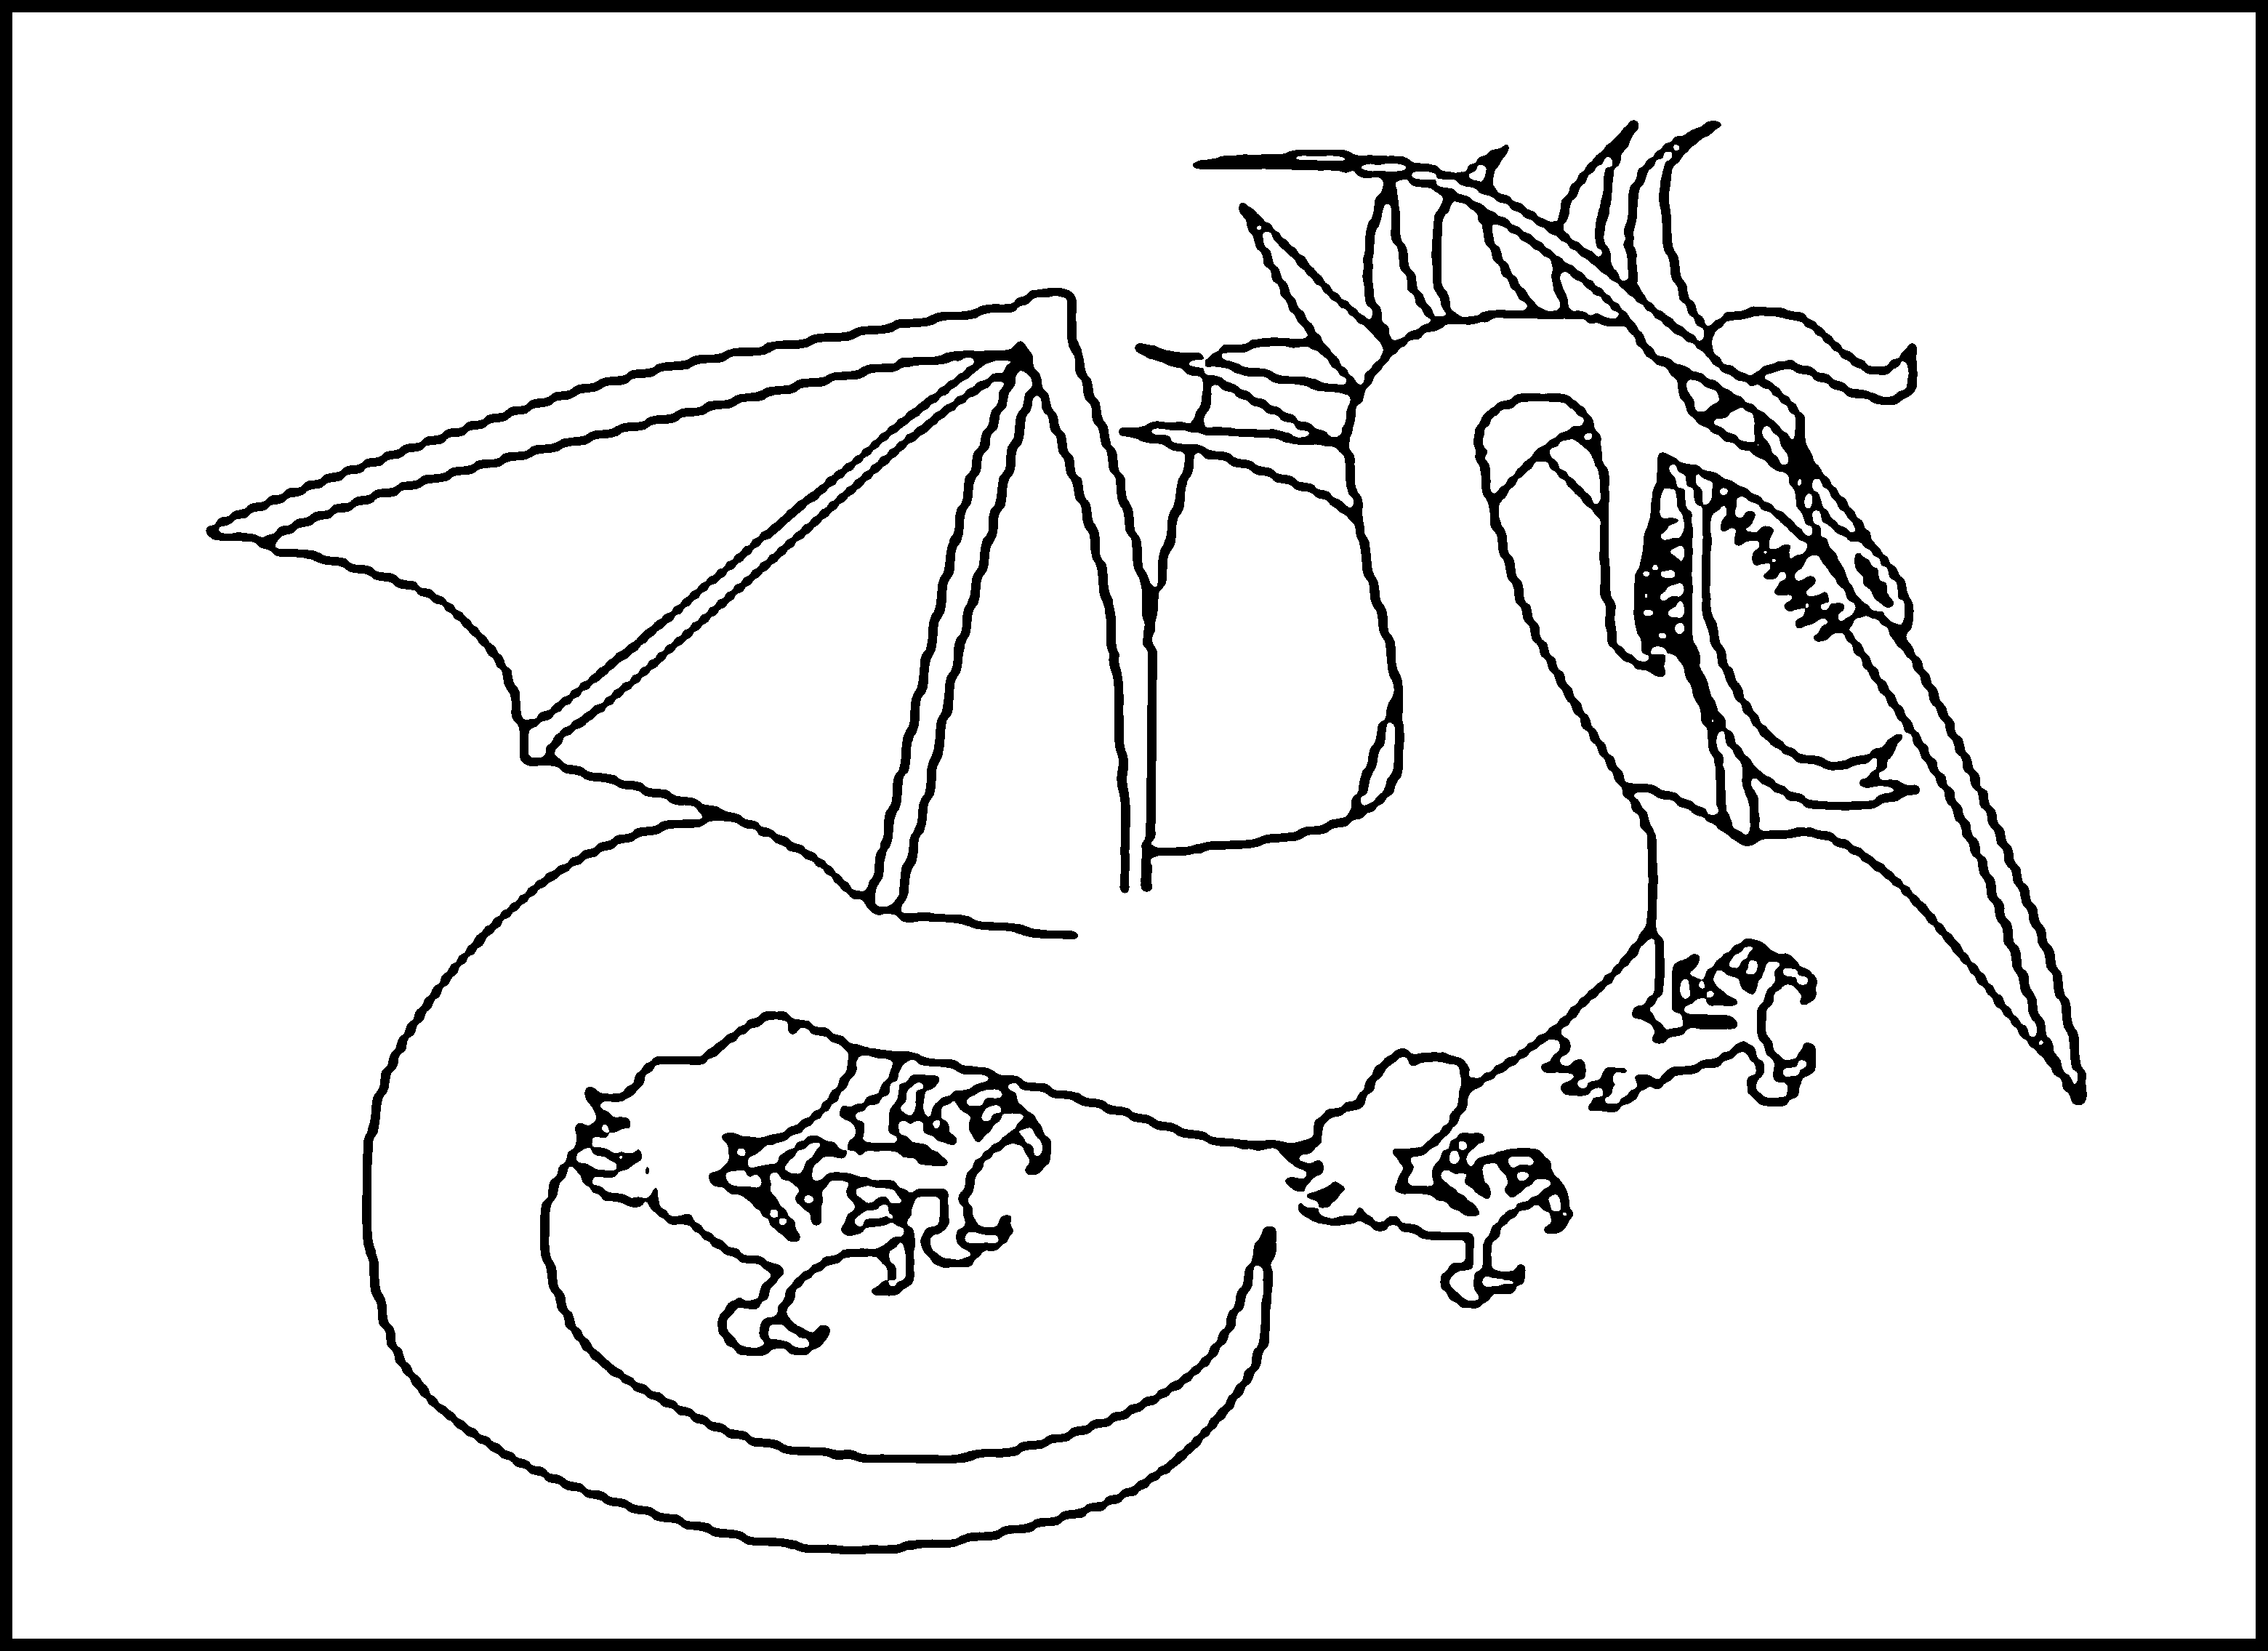 Printable coloring pages of dragons - Dragon Printable Coloring Pages